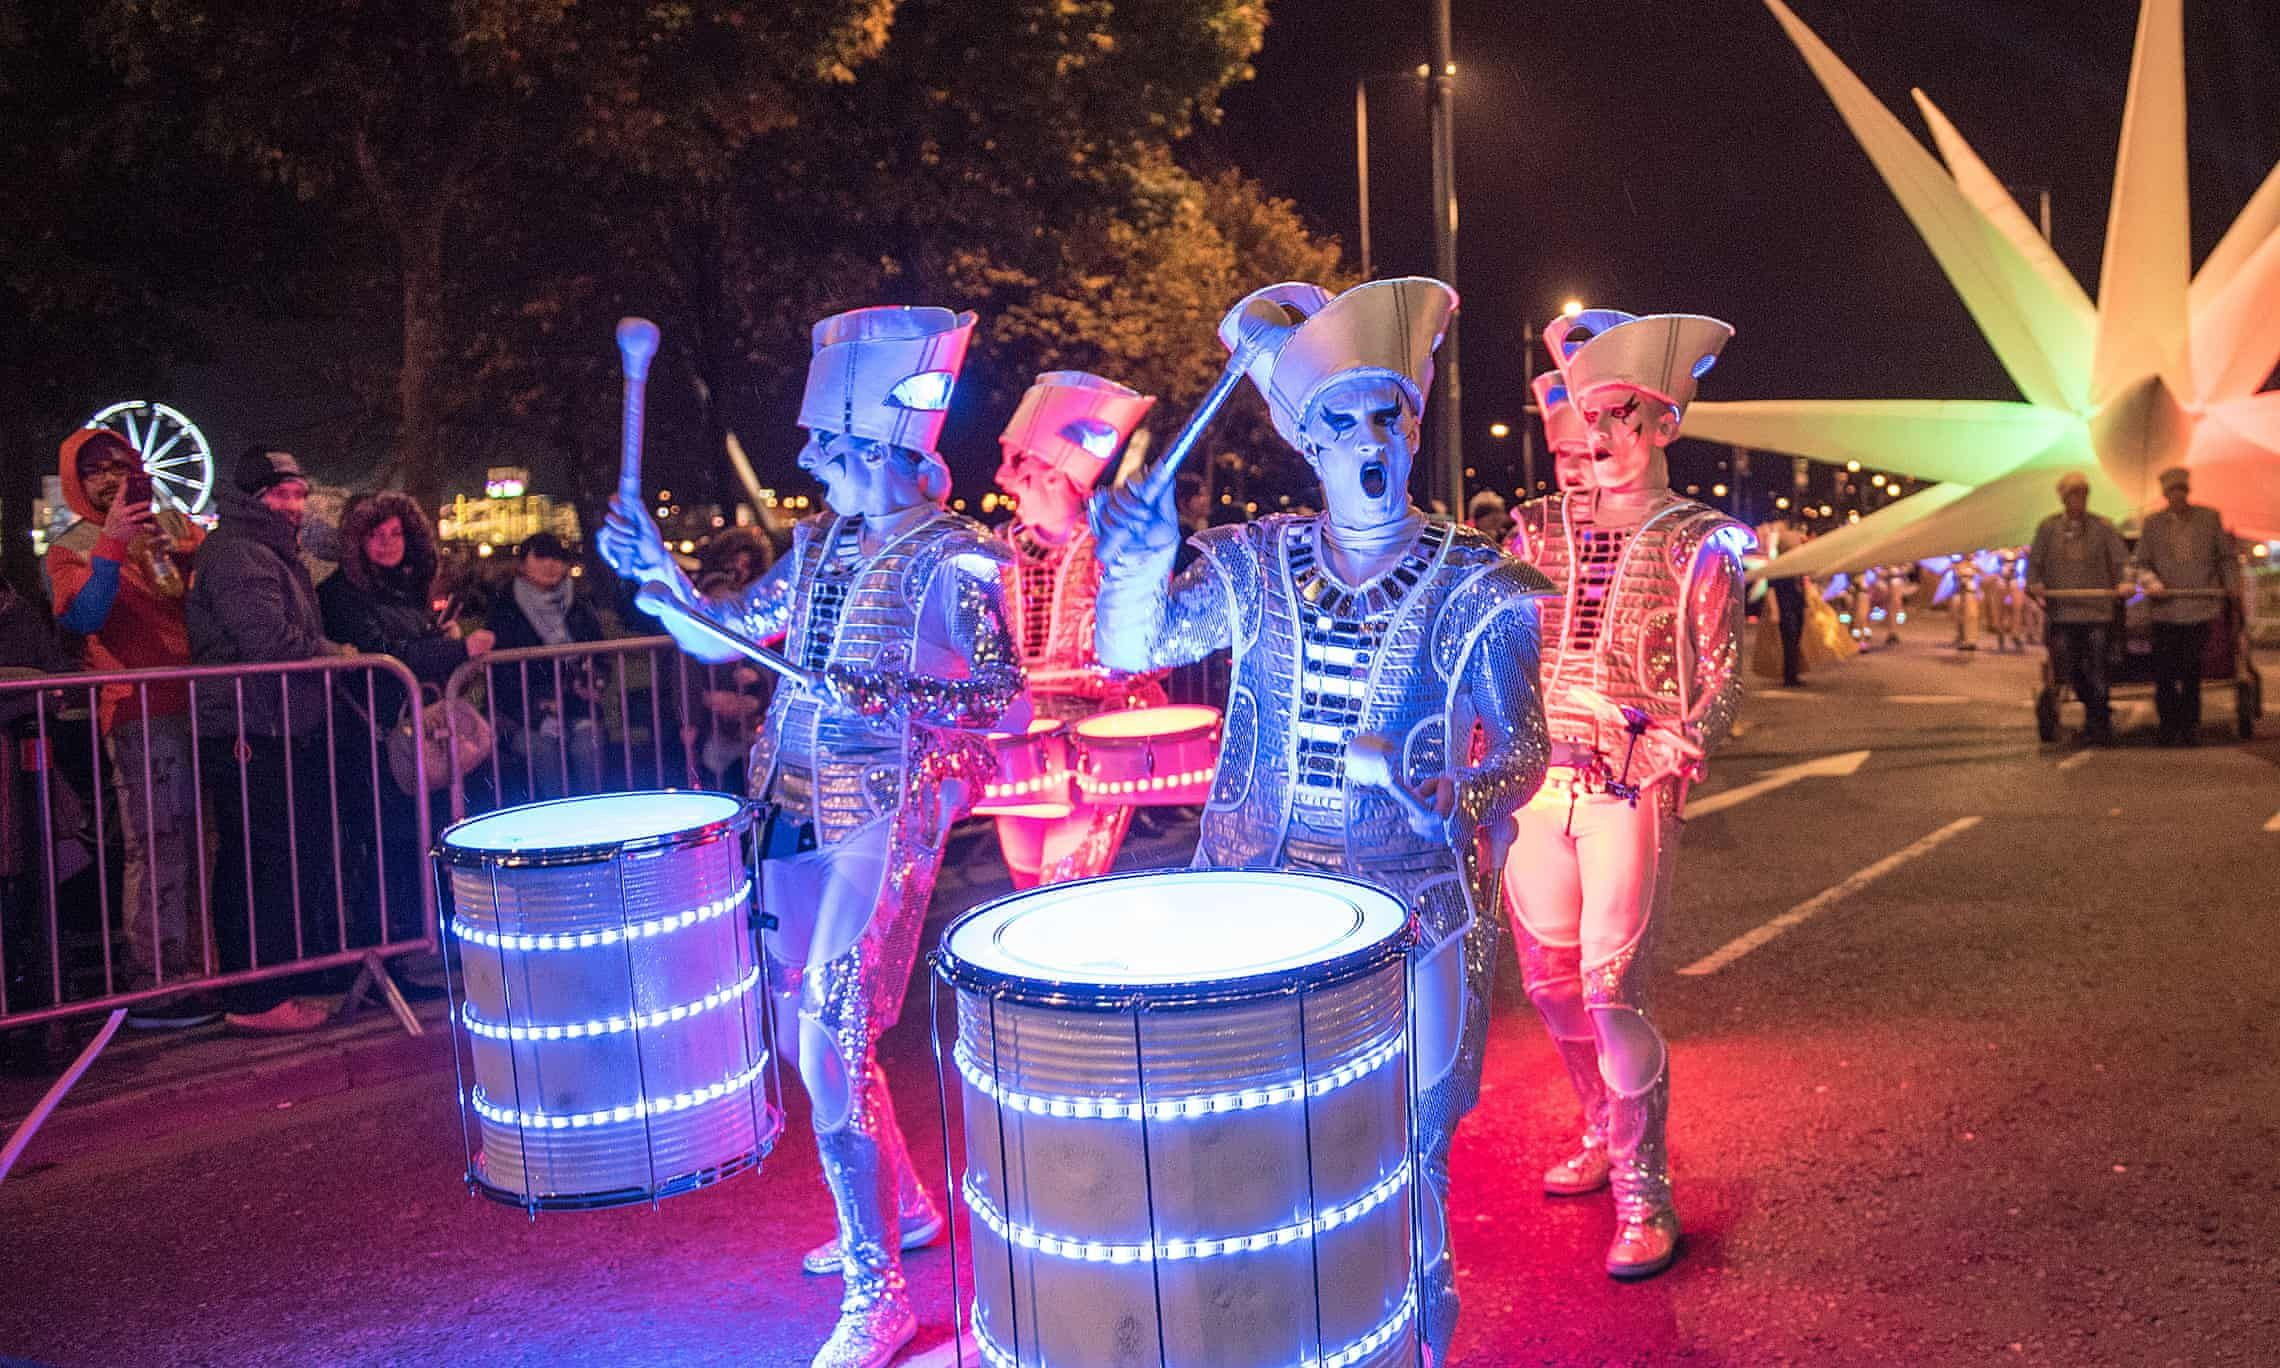 A very Derry Halloween a carnival of frights, fireworks